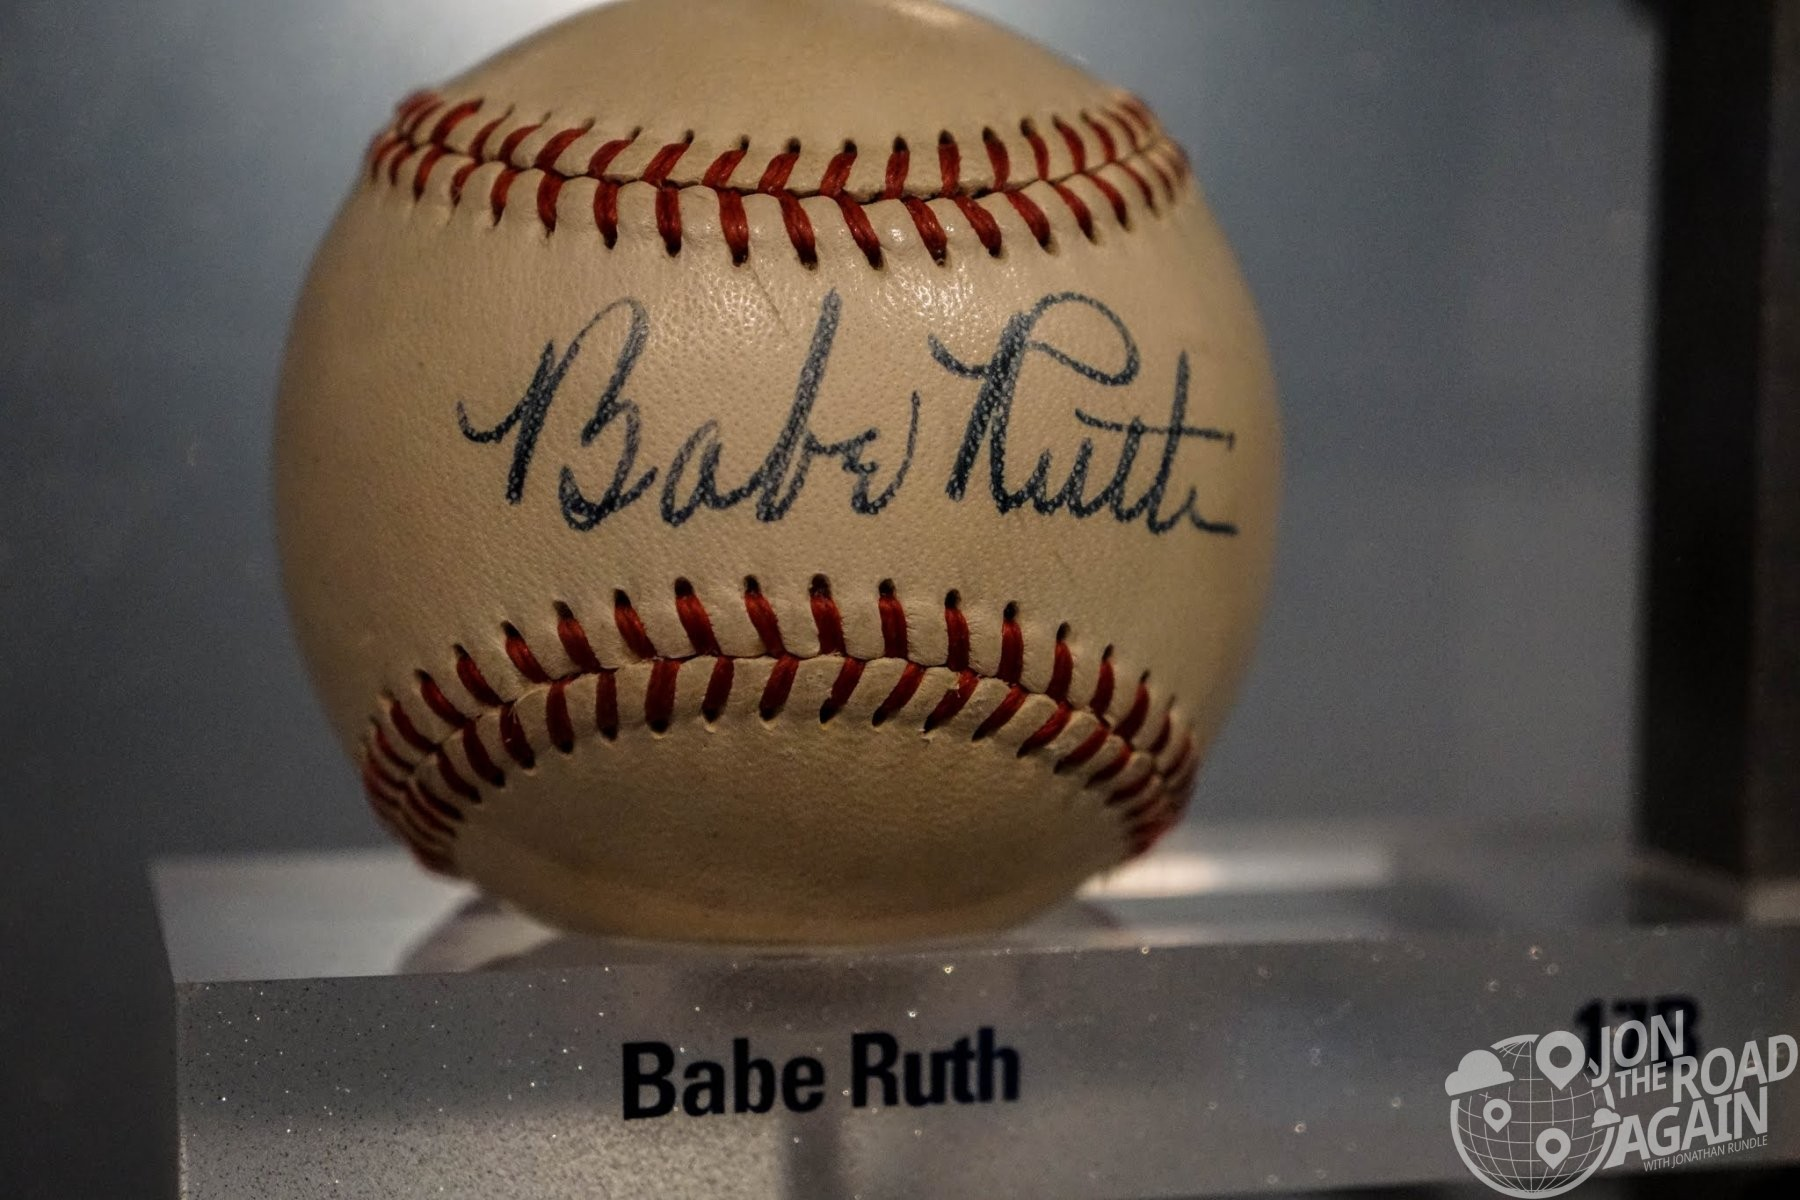 Babe Ruth autographed ball